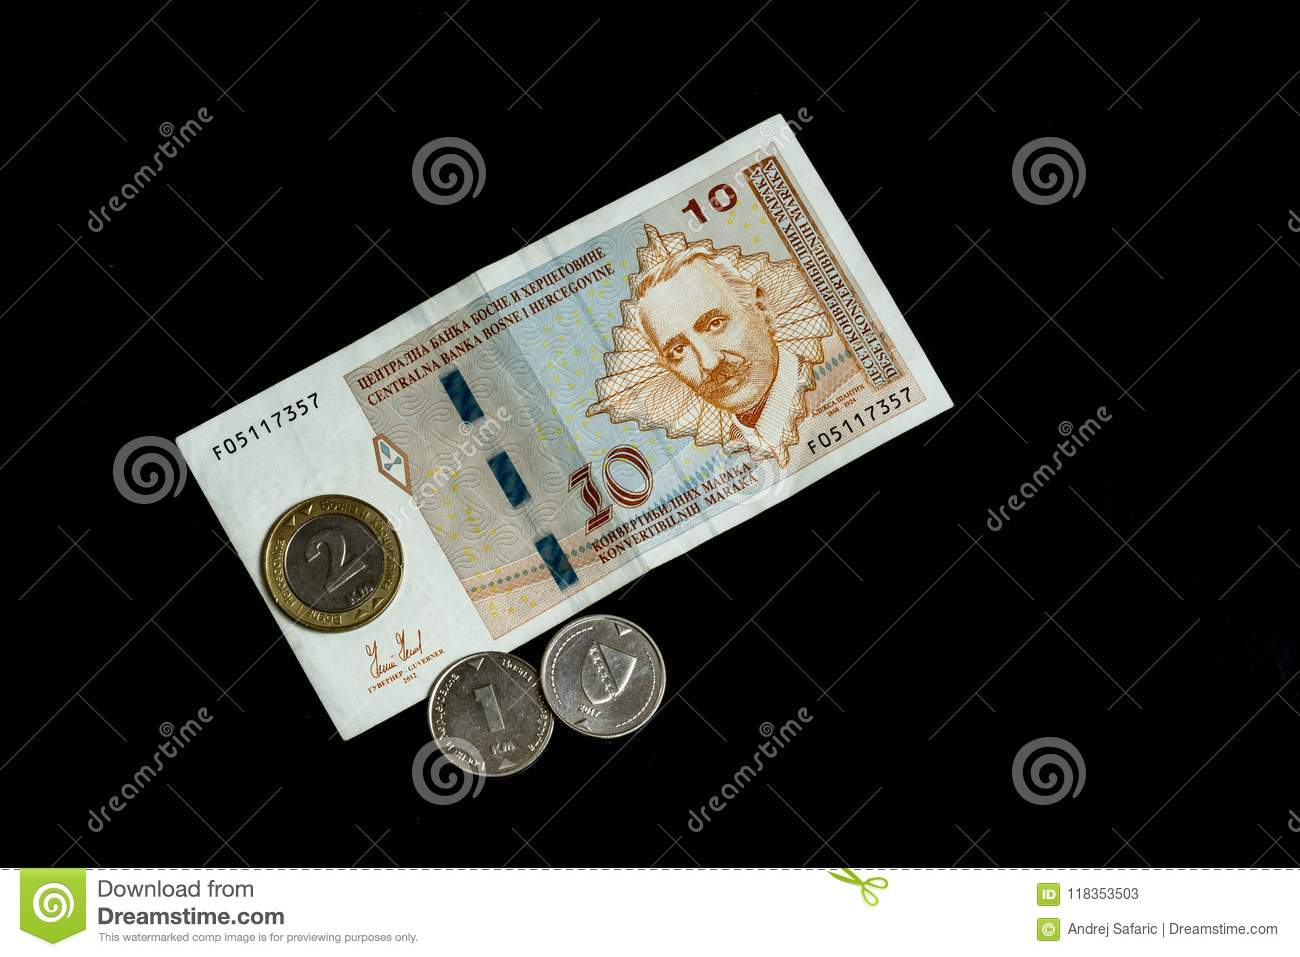 Bosnia and Herzegovina Convertible Mark notes and coins